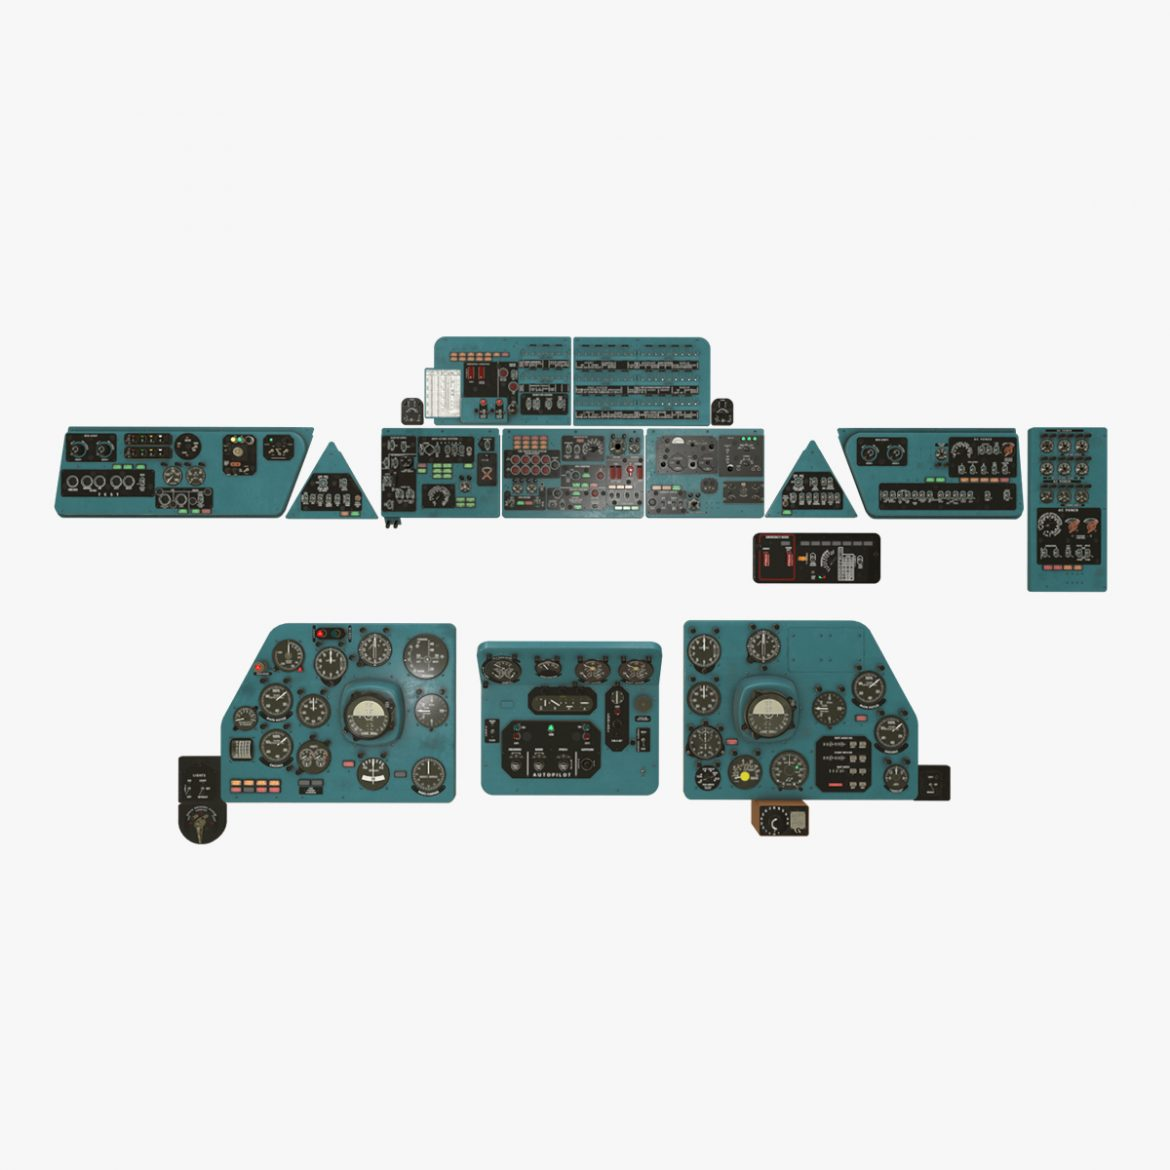 mi-8mt mi-17mt panel boards english 3d model 3ds max fbx obj 301952